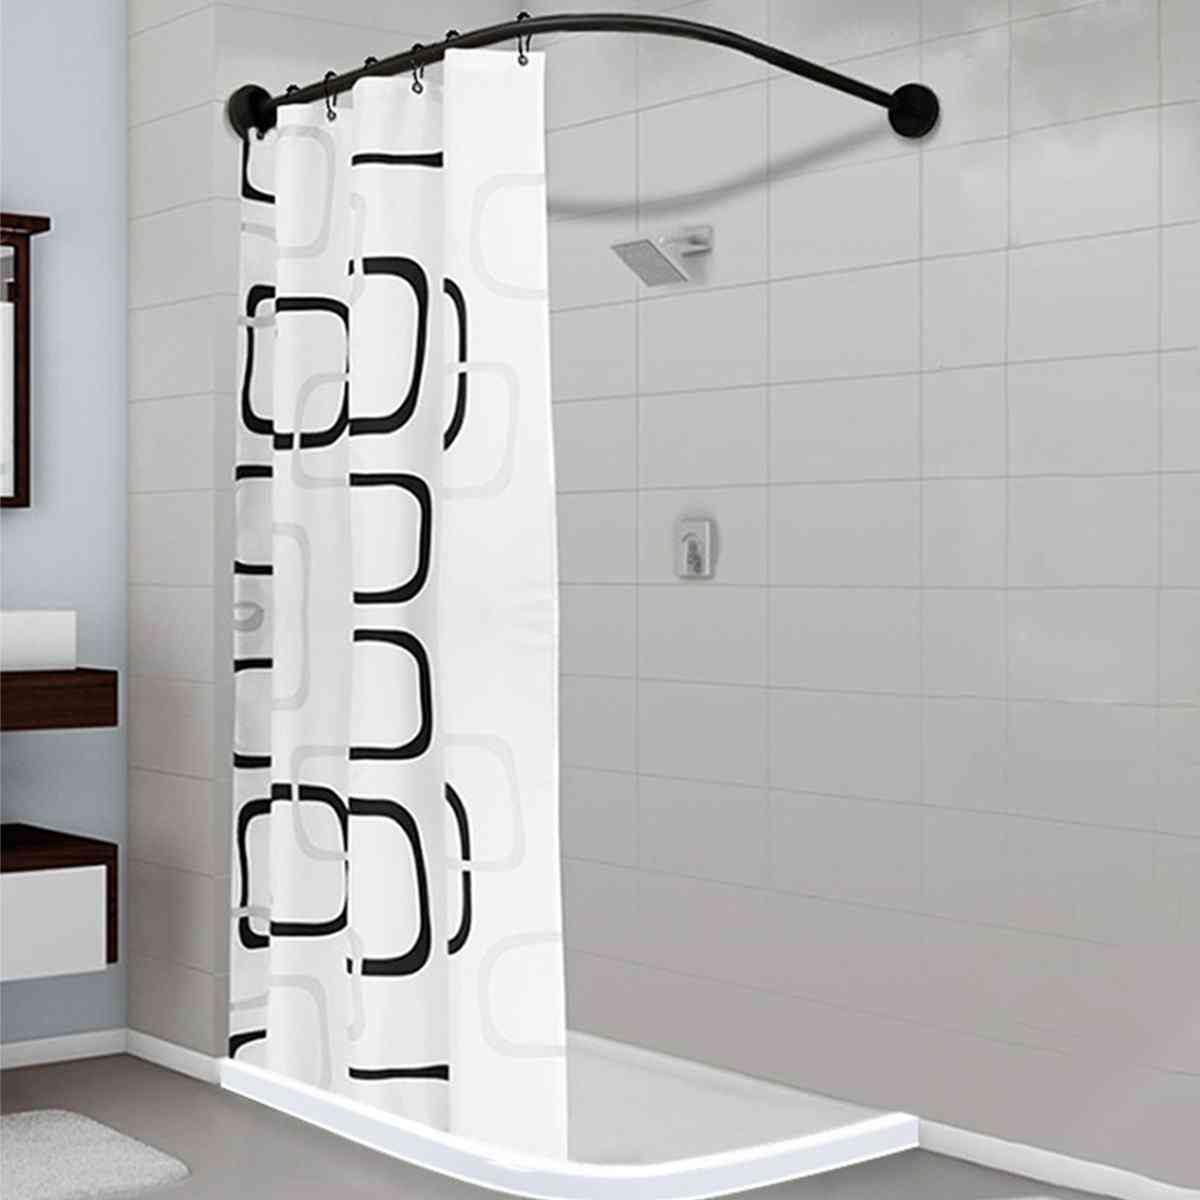 Extendable Corner Black Stainless Steel Shower Curtain Rod Pole With Metal Hooks